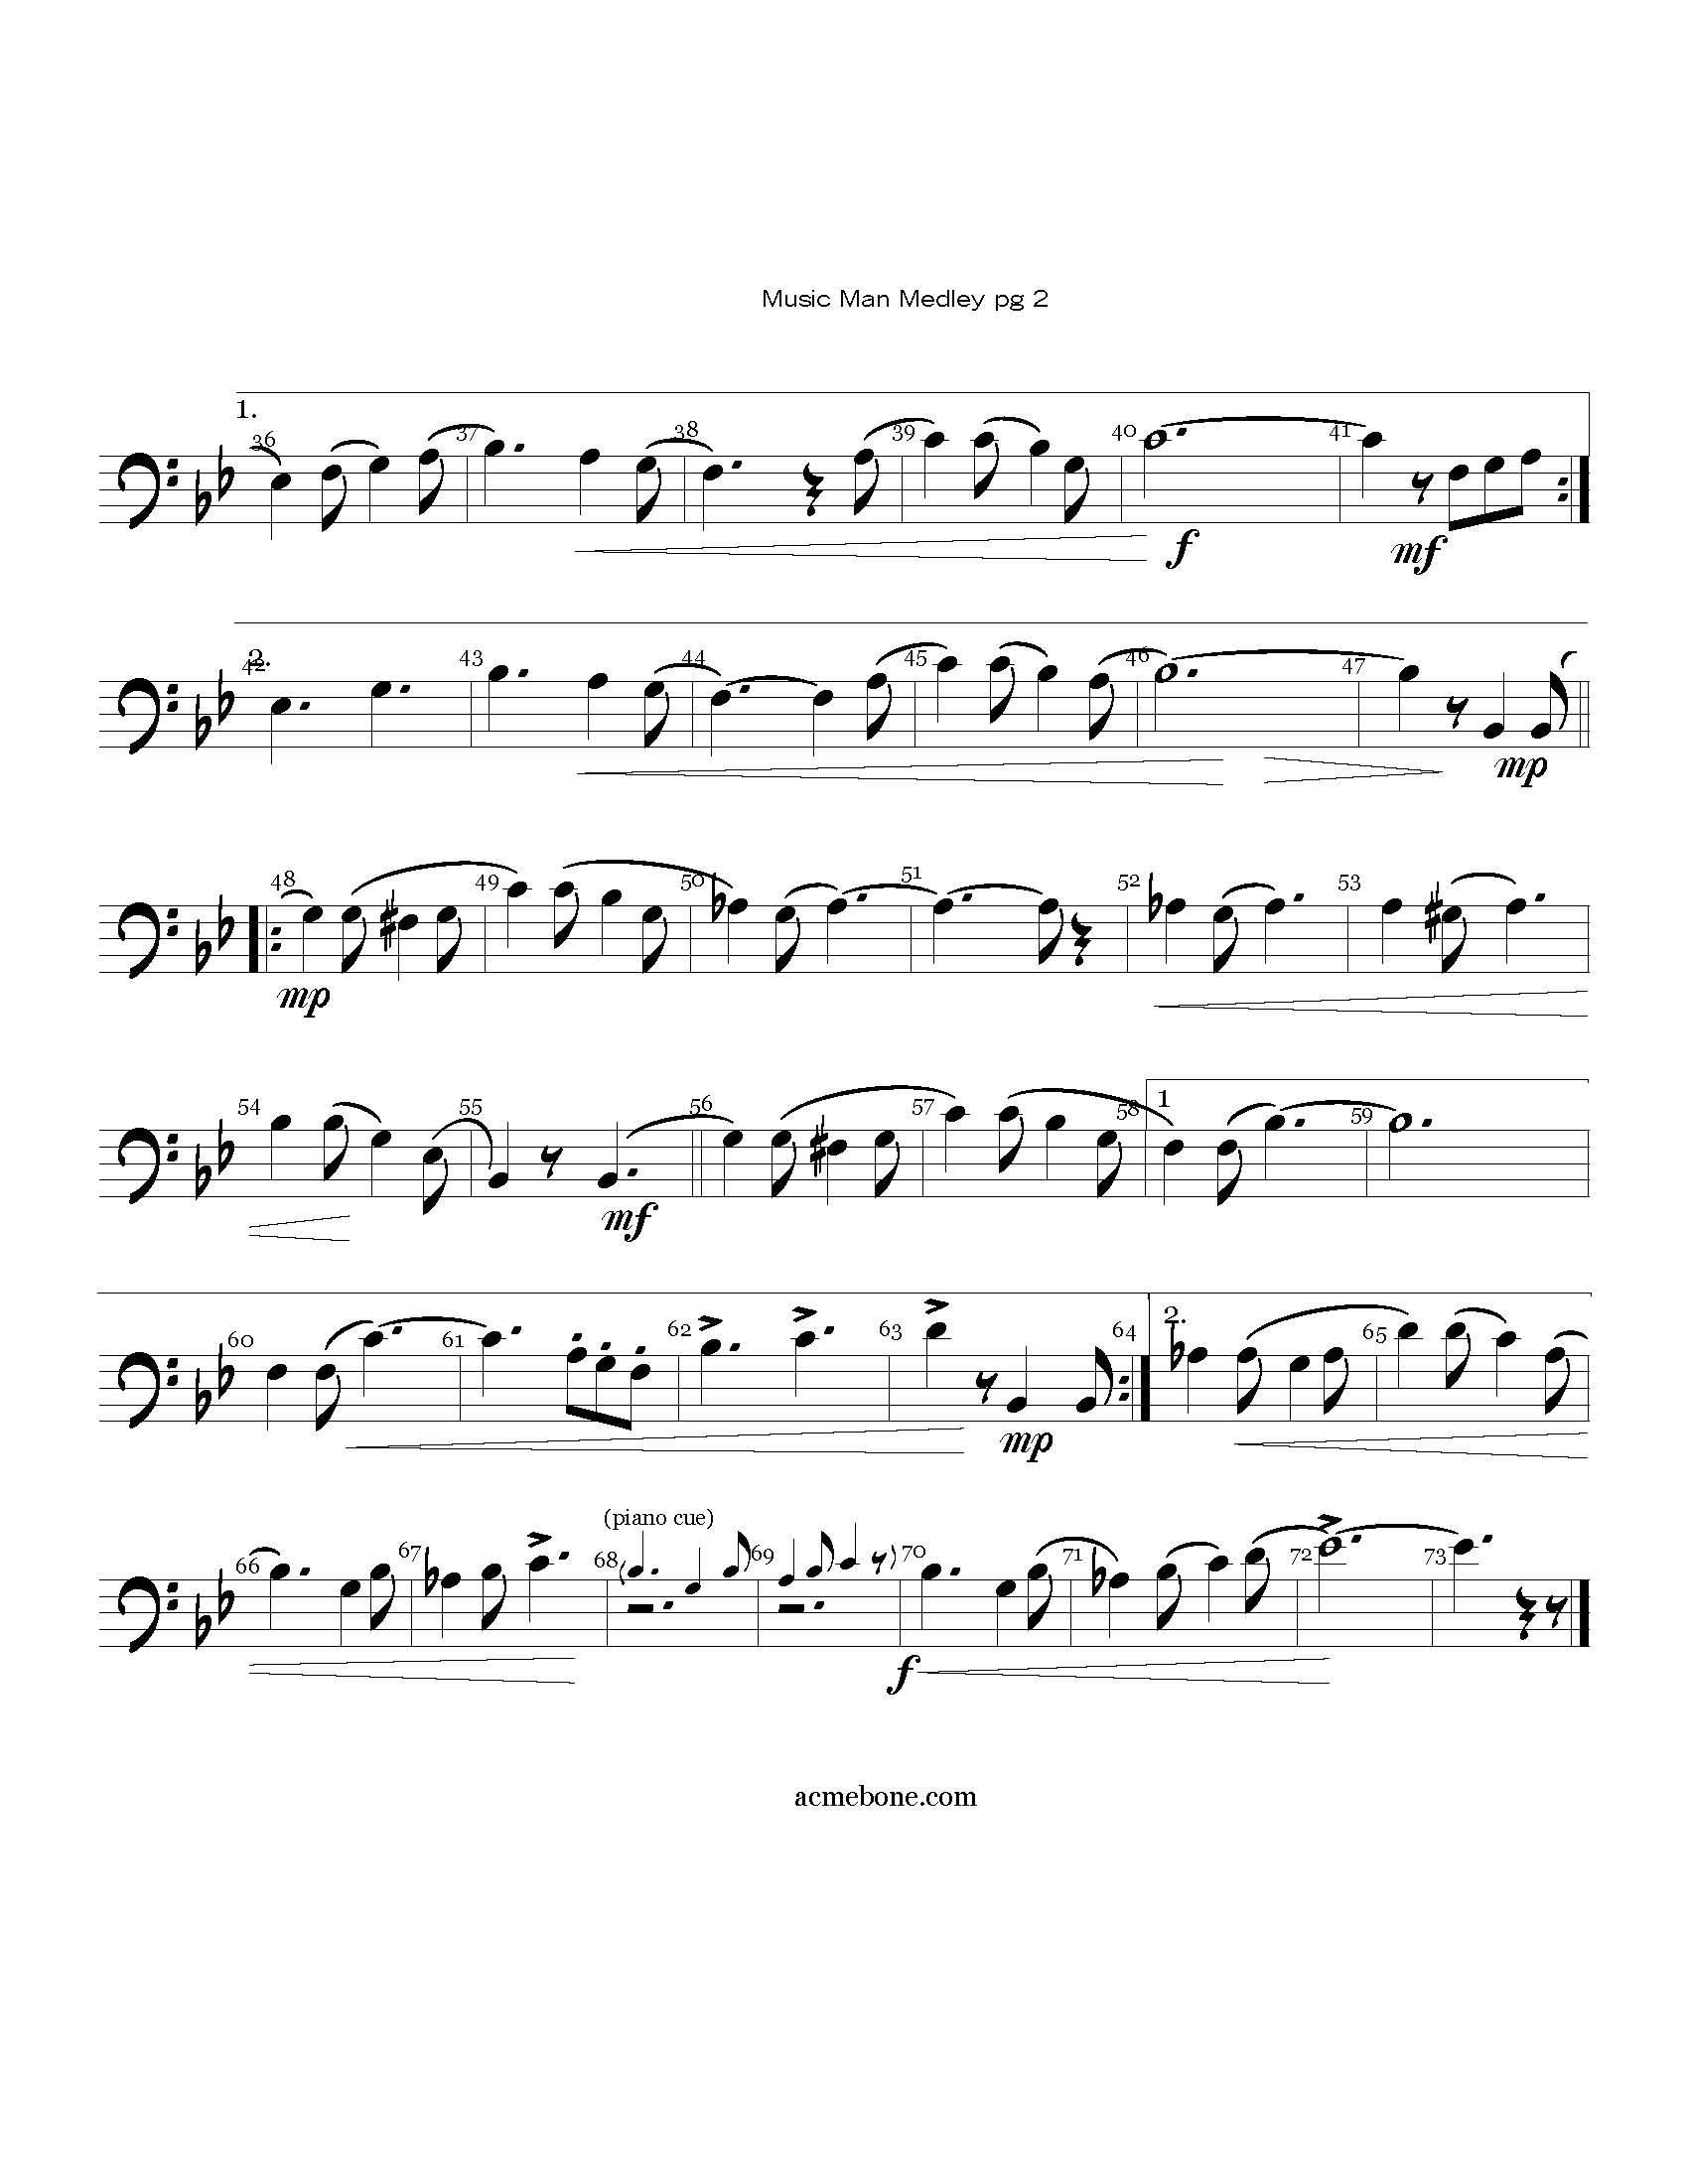 Music Man Medley_complete_Page_2.jpg